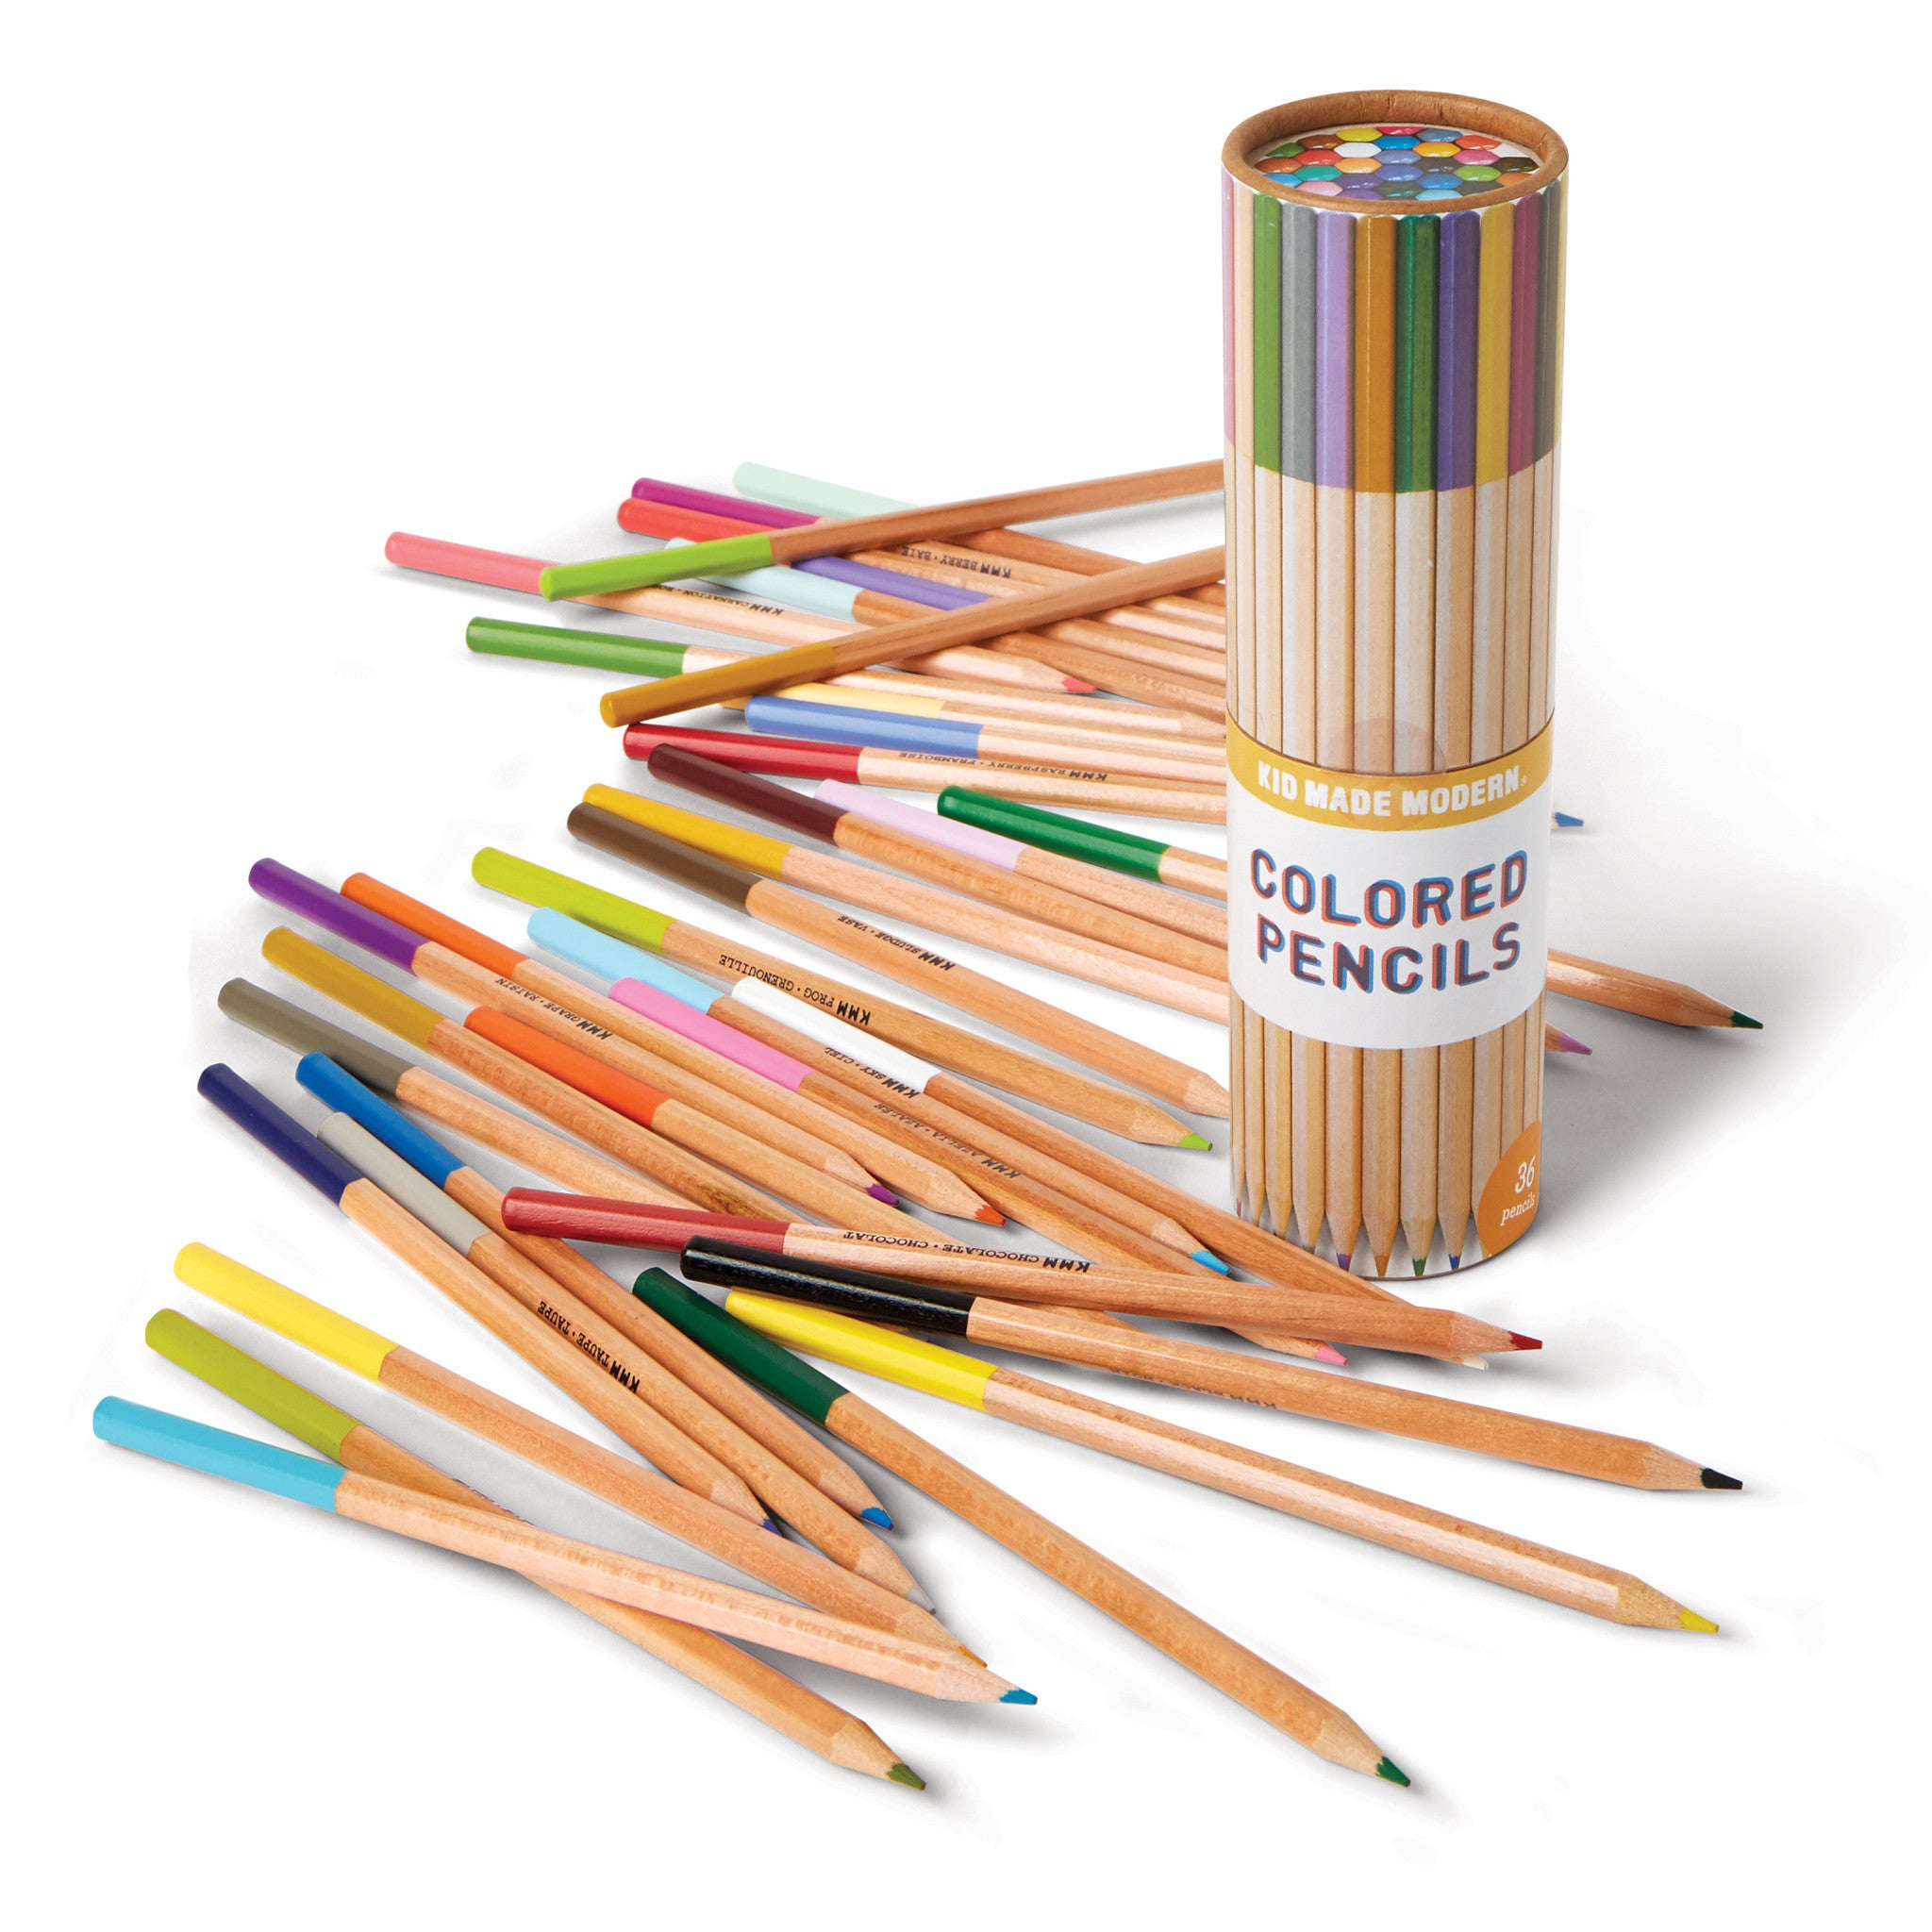 Colored Pencils - Kid Made Modern